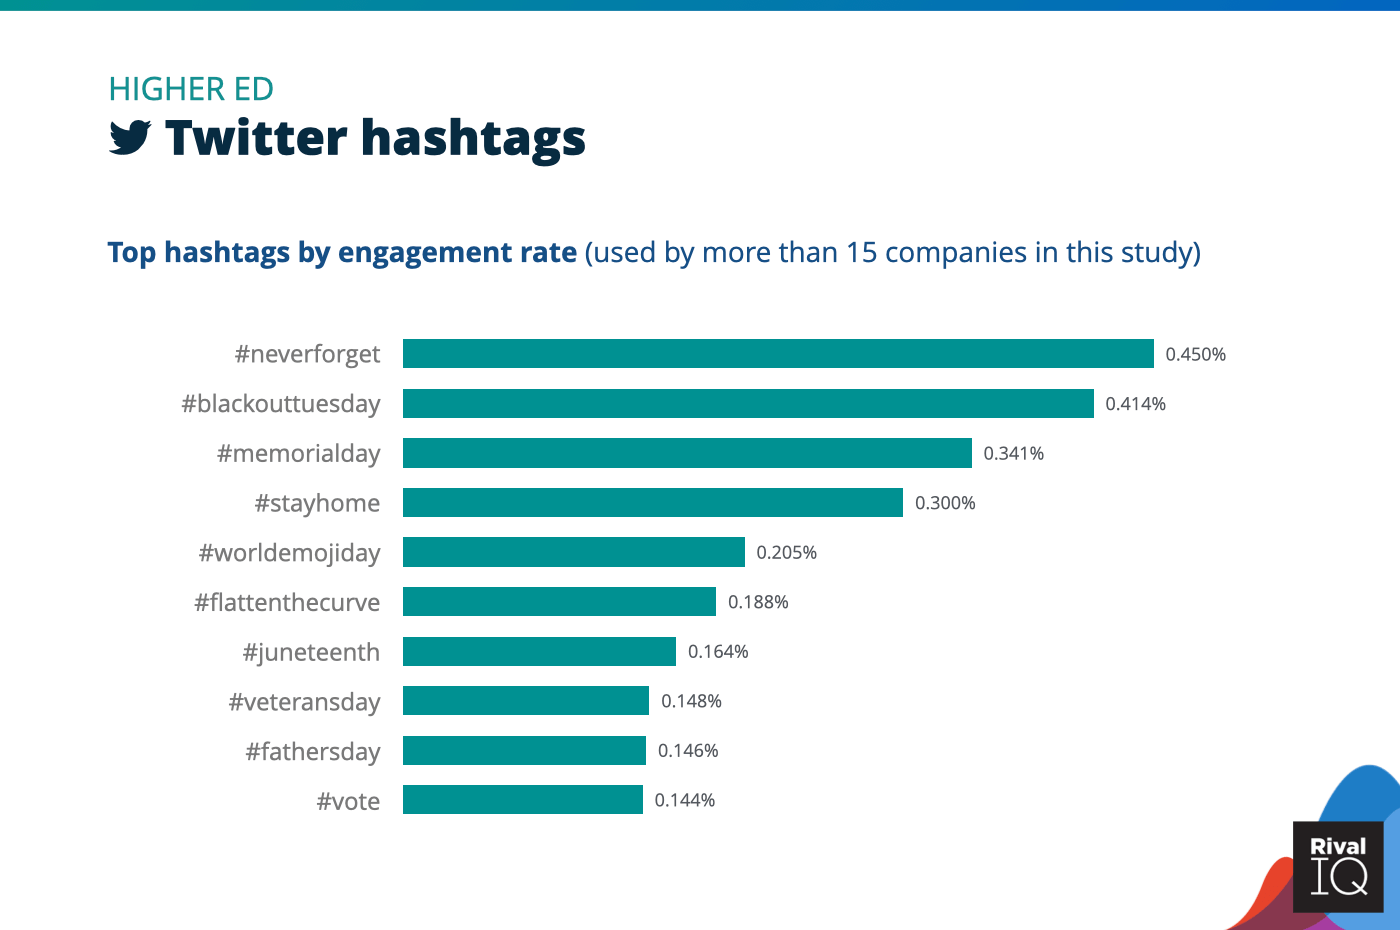 Chart of social media benchmarks for Top Twitter hashtags by engagement rate, Higher Ed